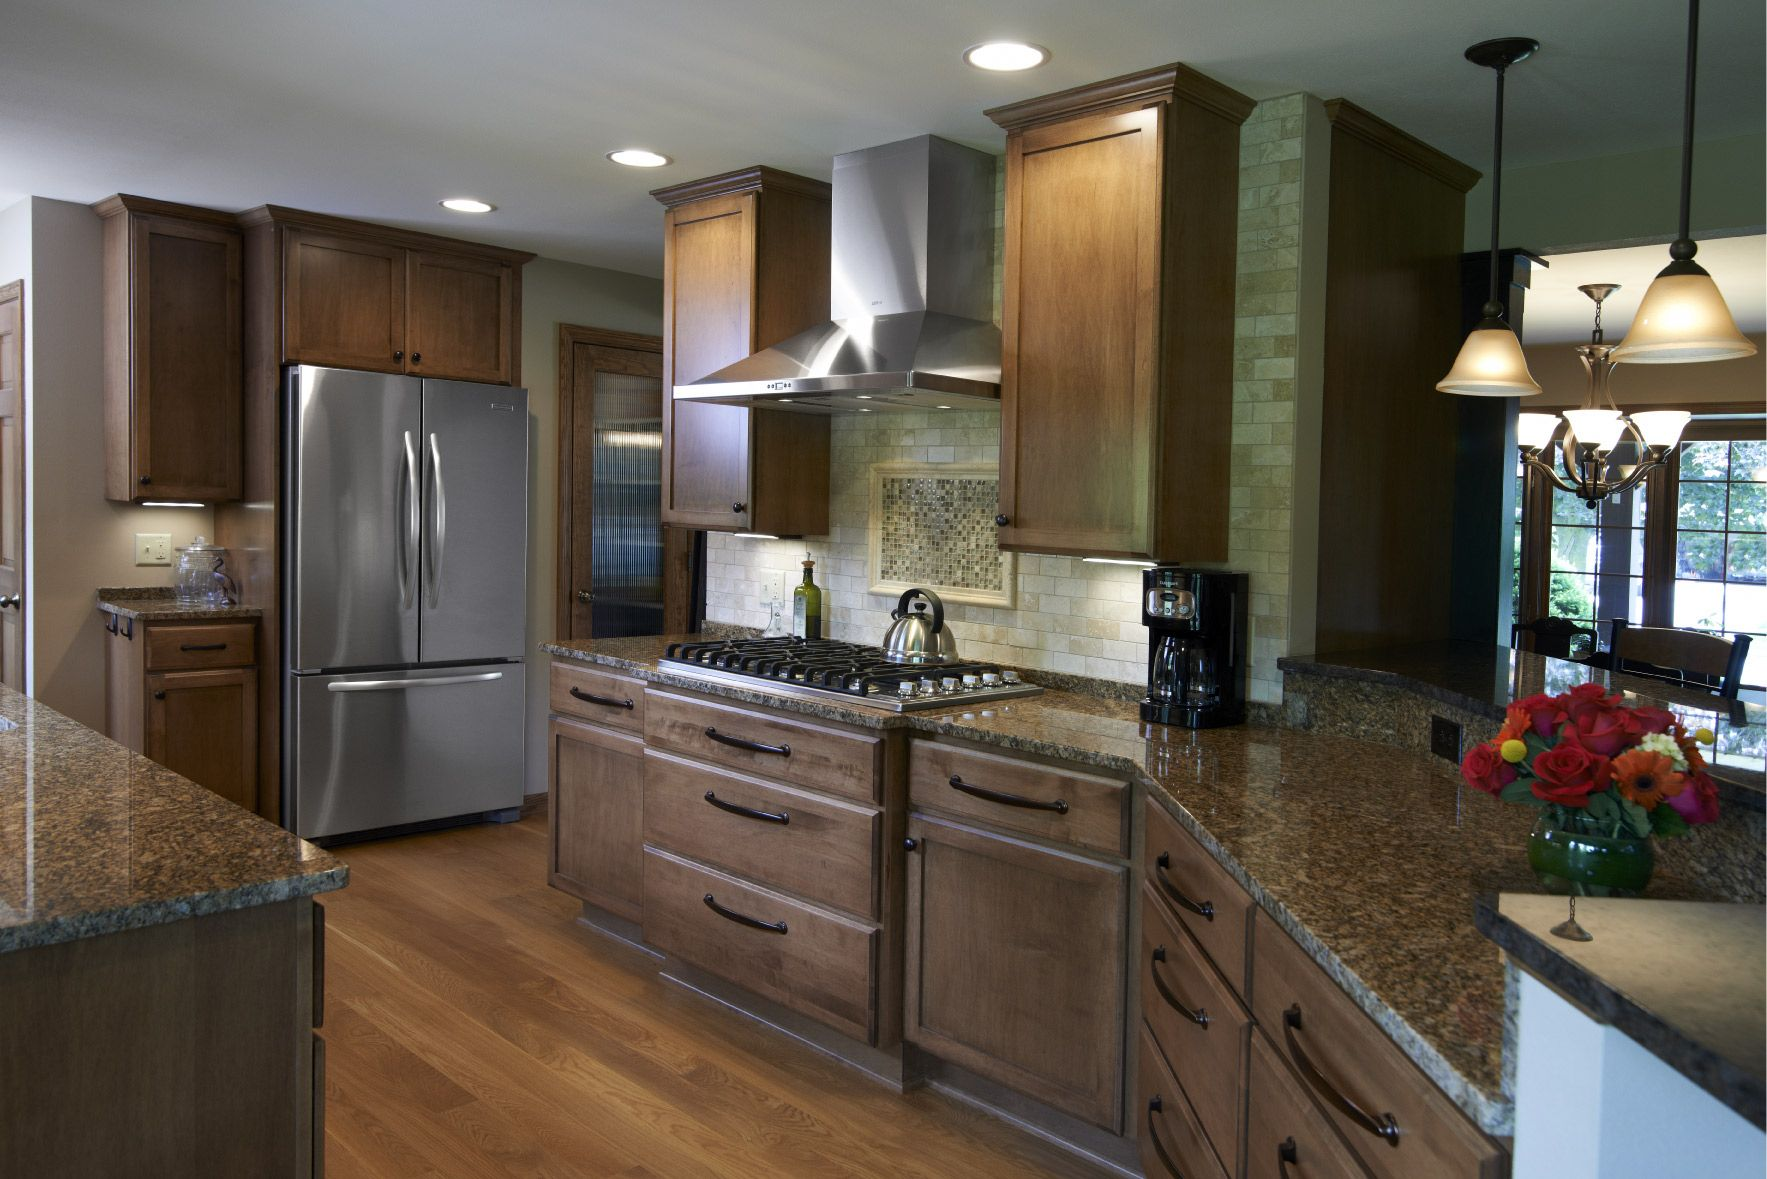 Deluxe Series Door Style Shakertown Ii Full Overlay Drawer Fronts Slab With B Profile Hei Kitchen Cabinet Manufacturers Kitchen Cabinets Kitchen Projects